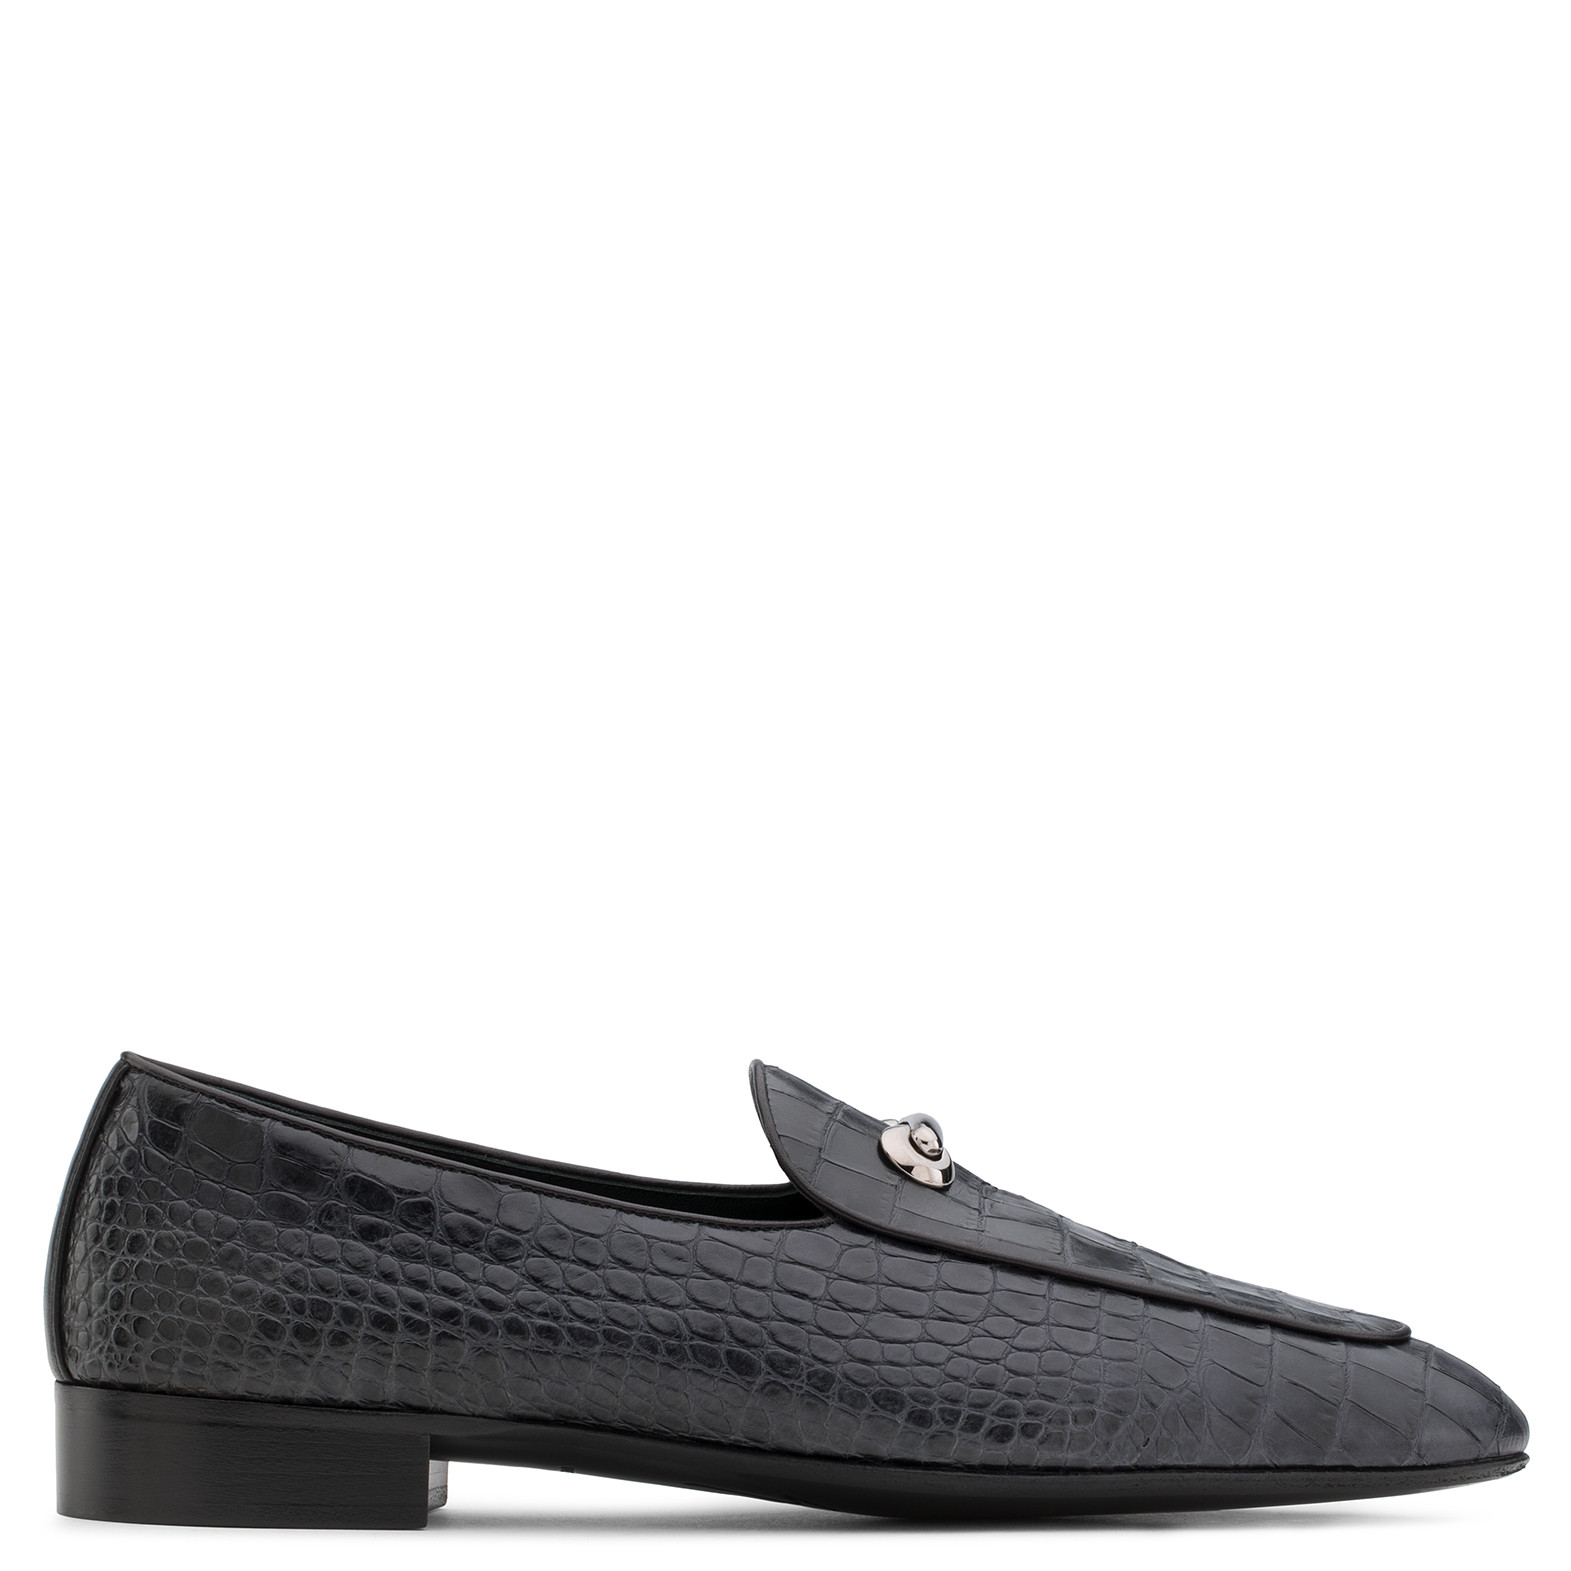 50e727ab7384 Giuseppe Zanotti Red crocodile-embossed calf leather loafer with metal  detail ARCHIBALD CROSS